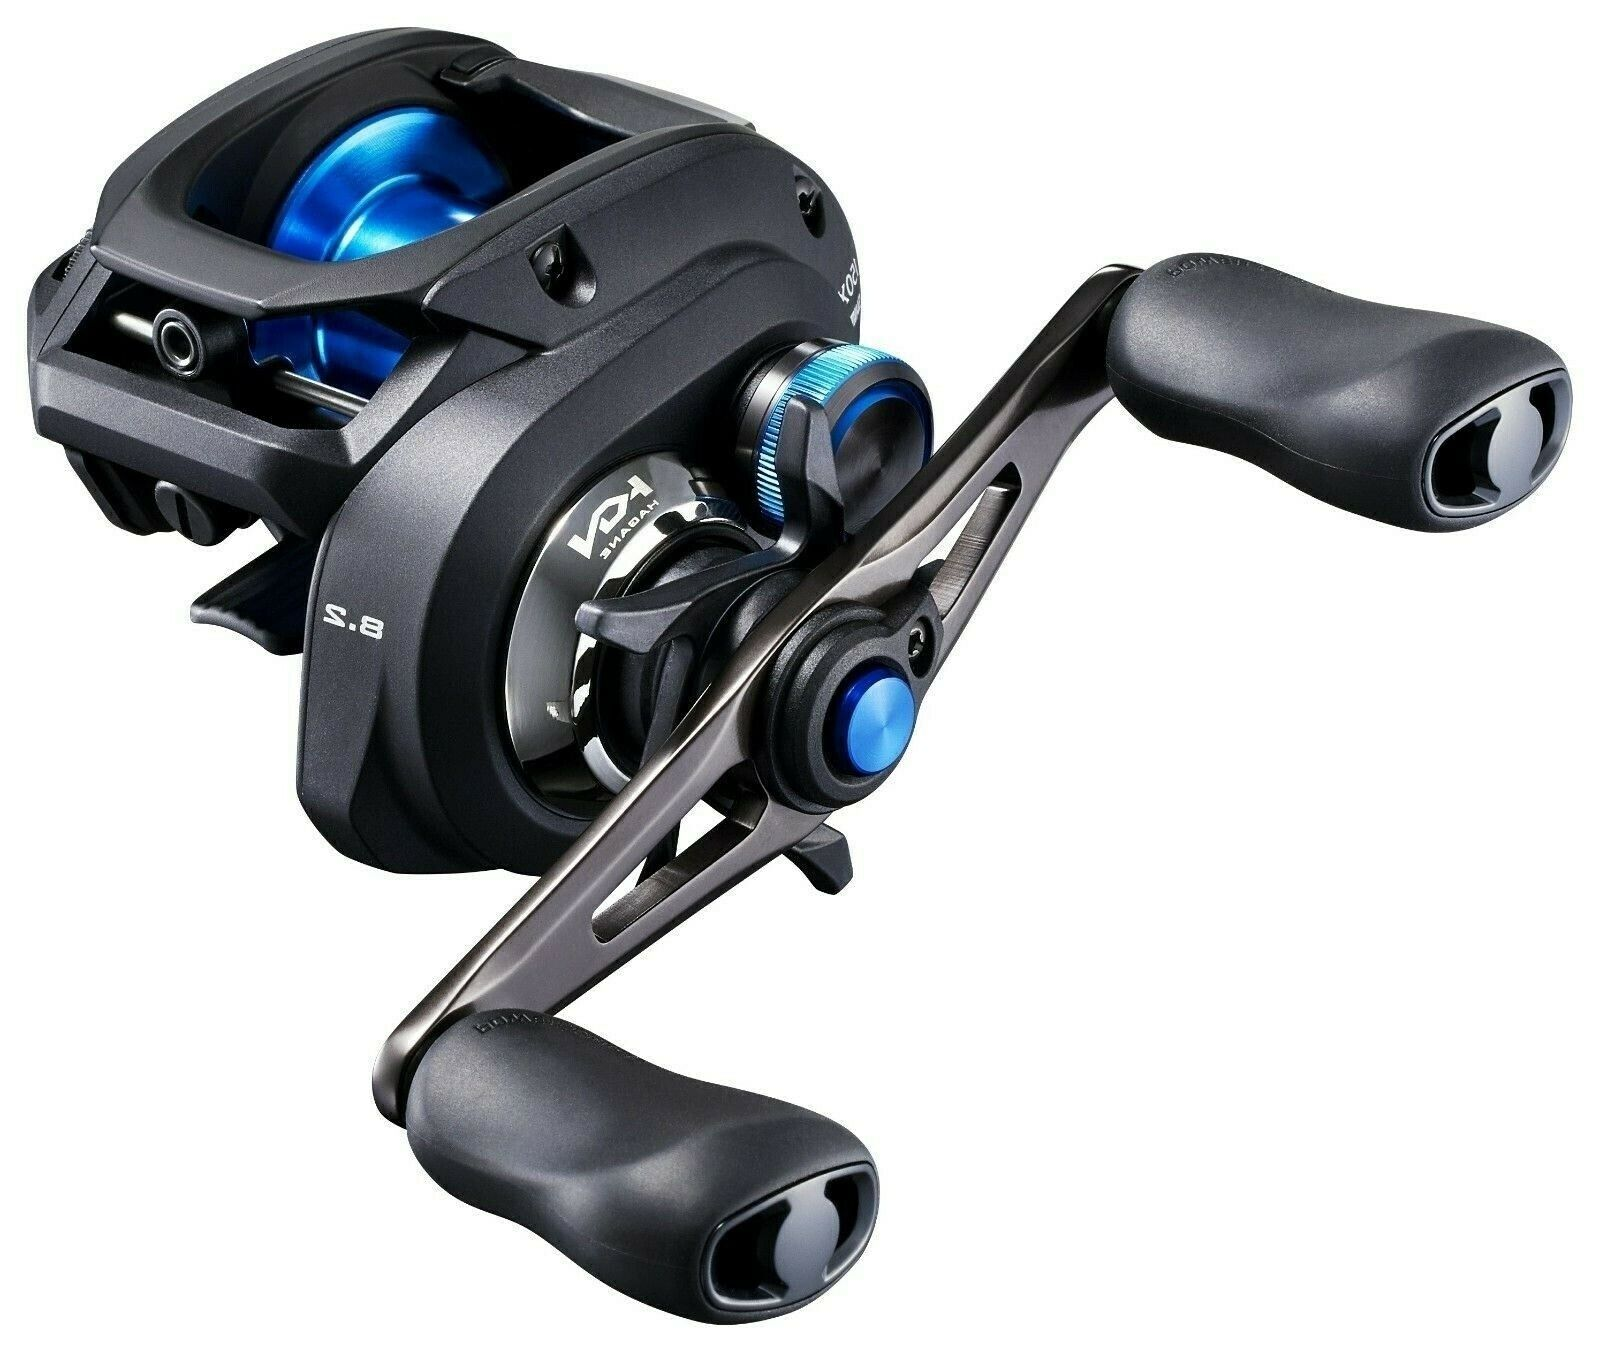 Shiuomoo SLX DC SLXDC151 Casting Reel  6.3 1 Retrieve Speed, Left He